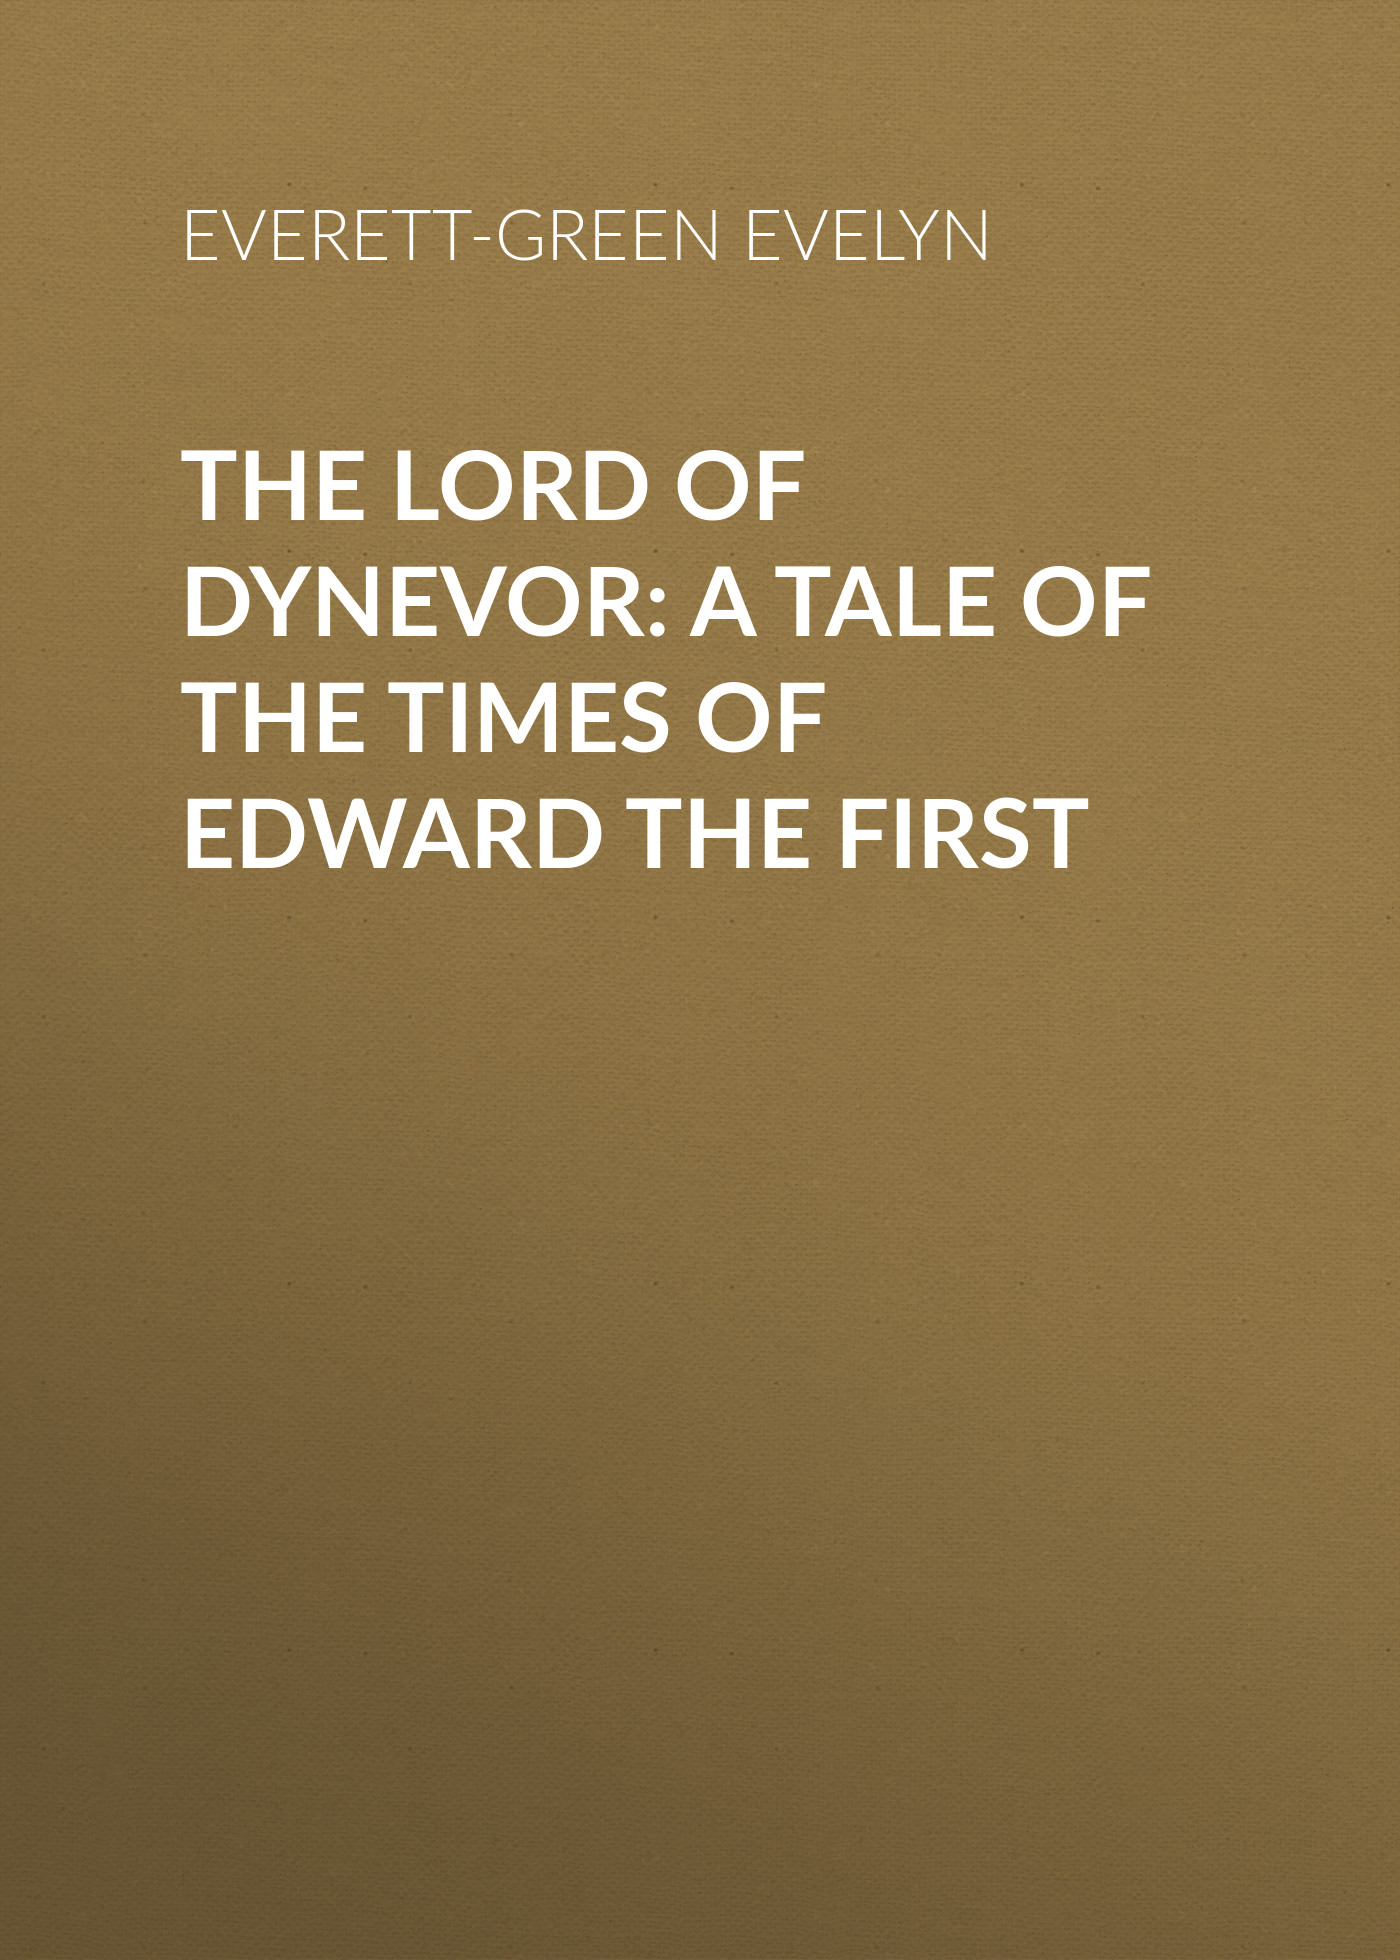 Everett-Green Evelyn The Lord of Dynevor: A Tale of the Times of Edward the First everett green evelyn the secret chamber at chad